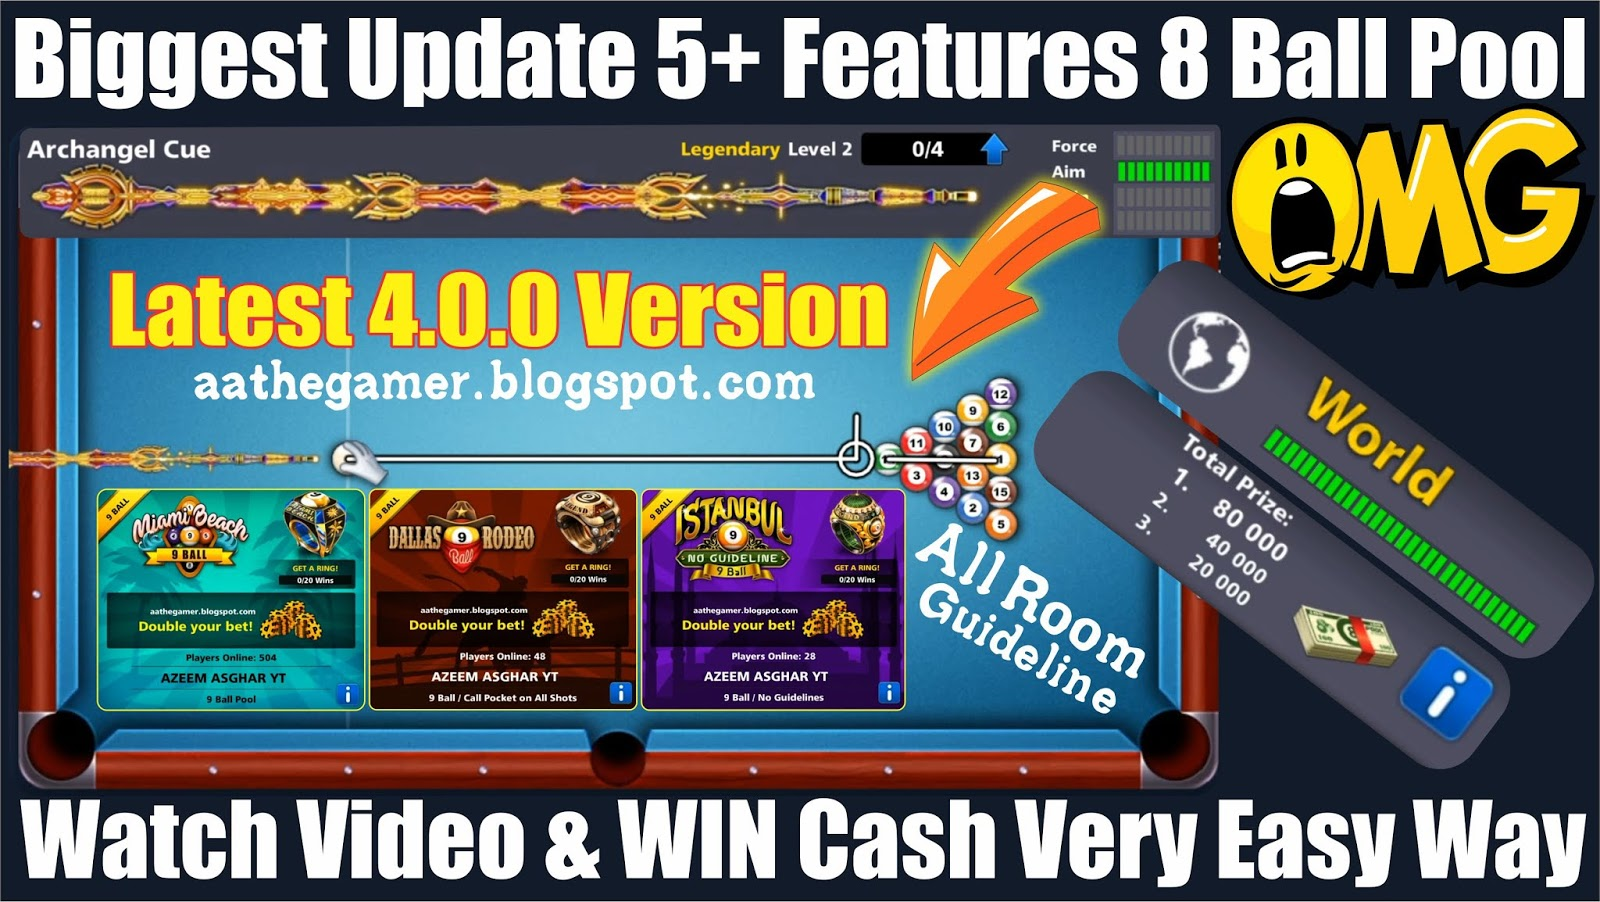 8 ball pool mod apk 4.2 0 guideline